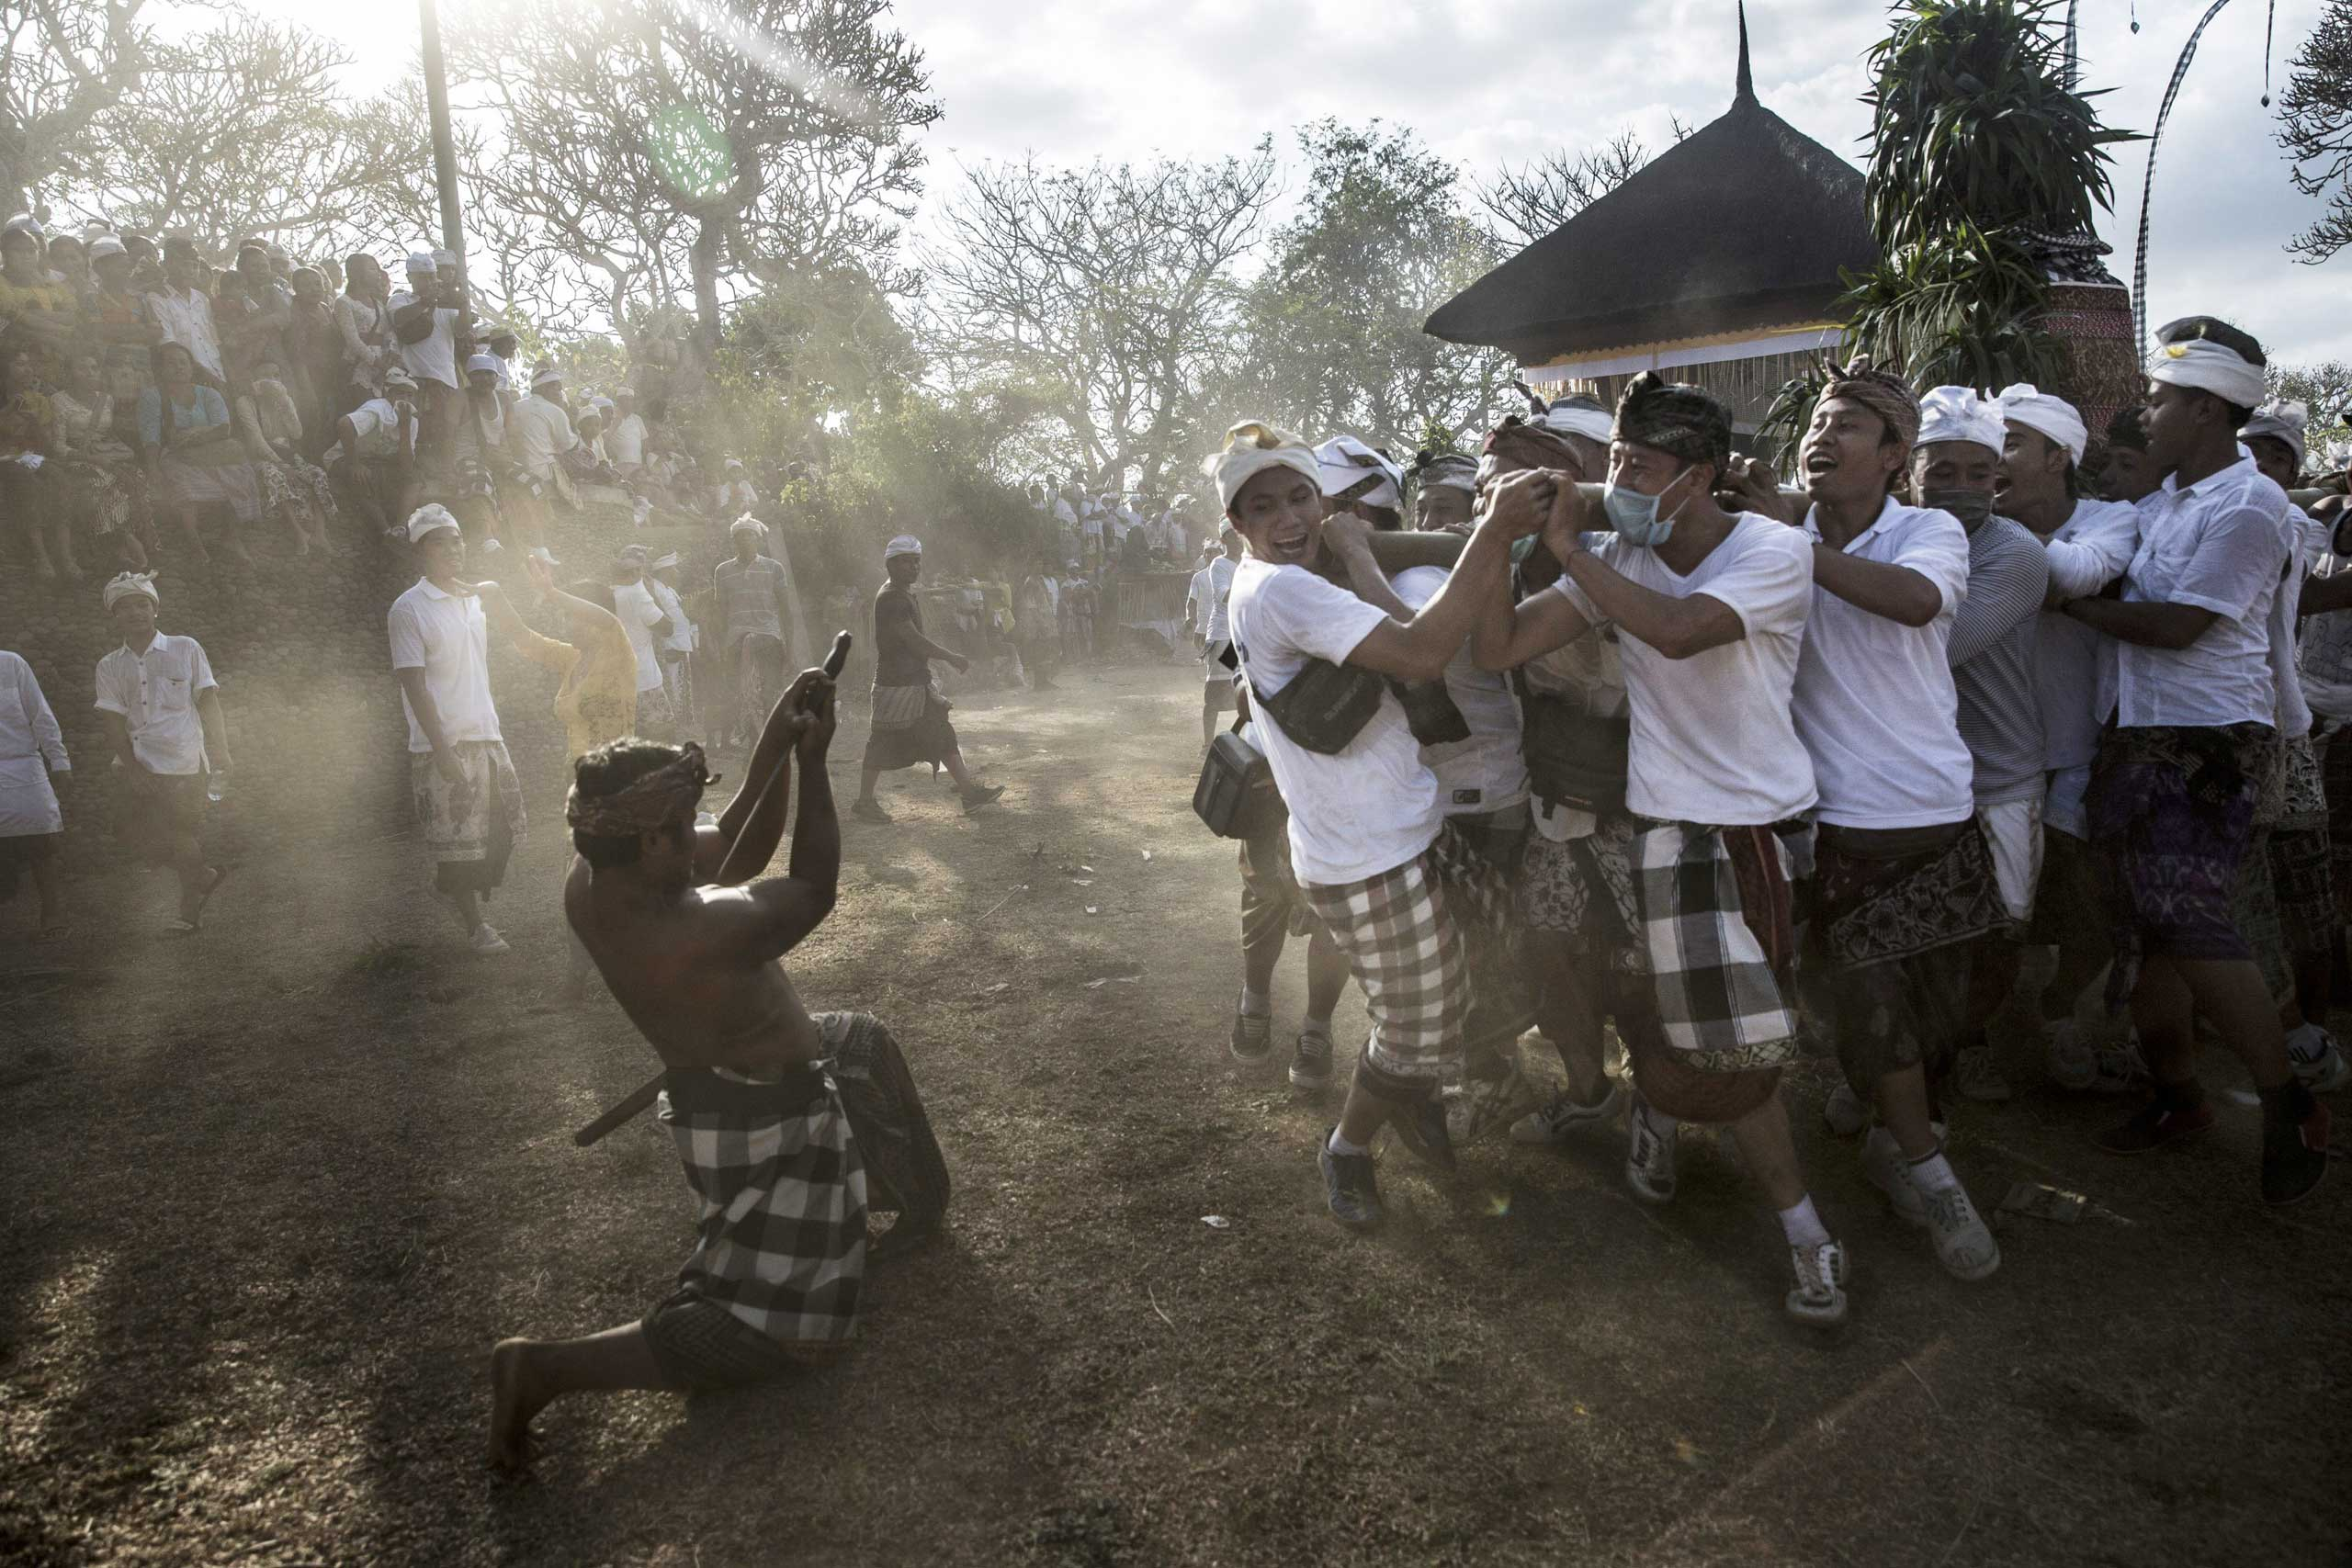 A Balinese man in a state of trance stabs his chest in front of a palanquin, the symbol of god, during Ngusaba Gumang Ritual in Karangasem, Bali, Indonesia, Oct. 6, 2014.